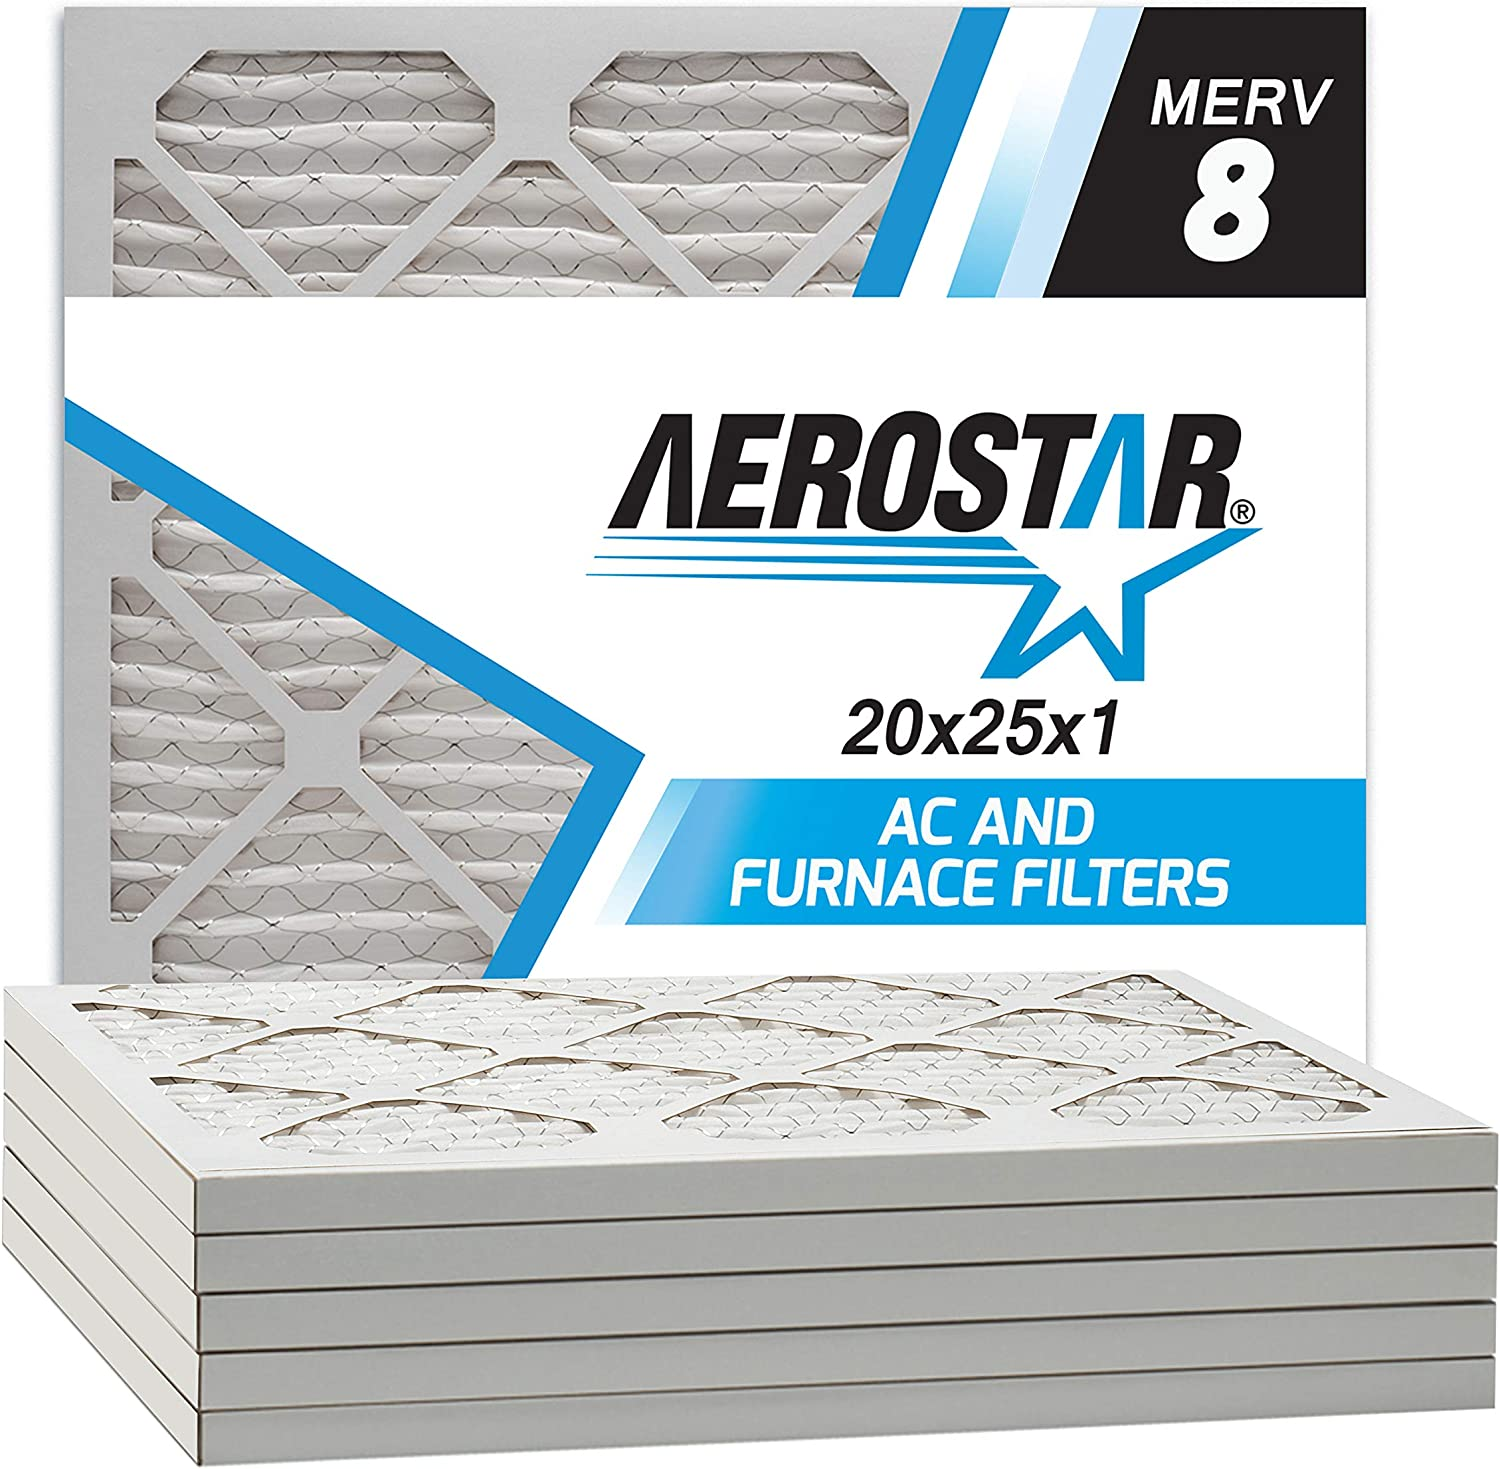 Aerostar 20x25x1 MERV 8 Pleated Air Filter, Made in the USA, 6-Pack